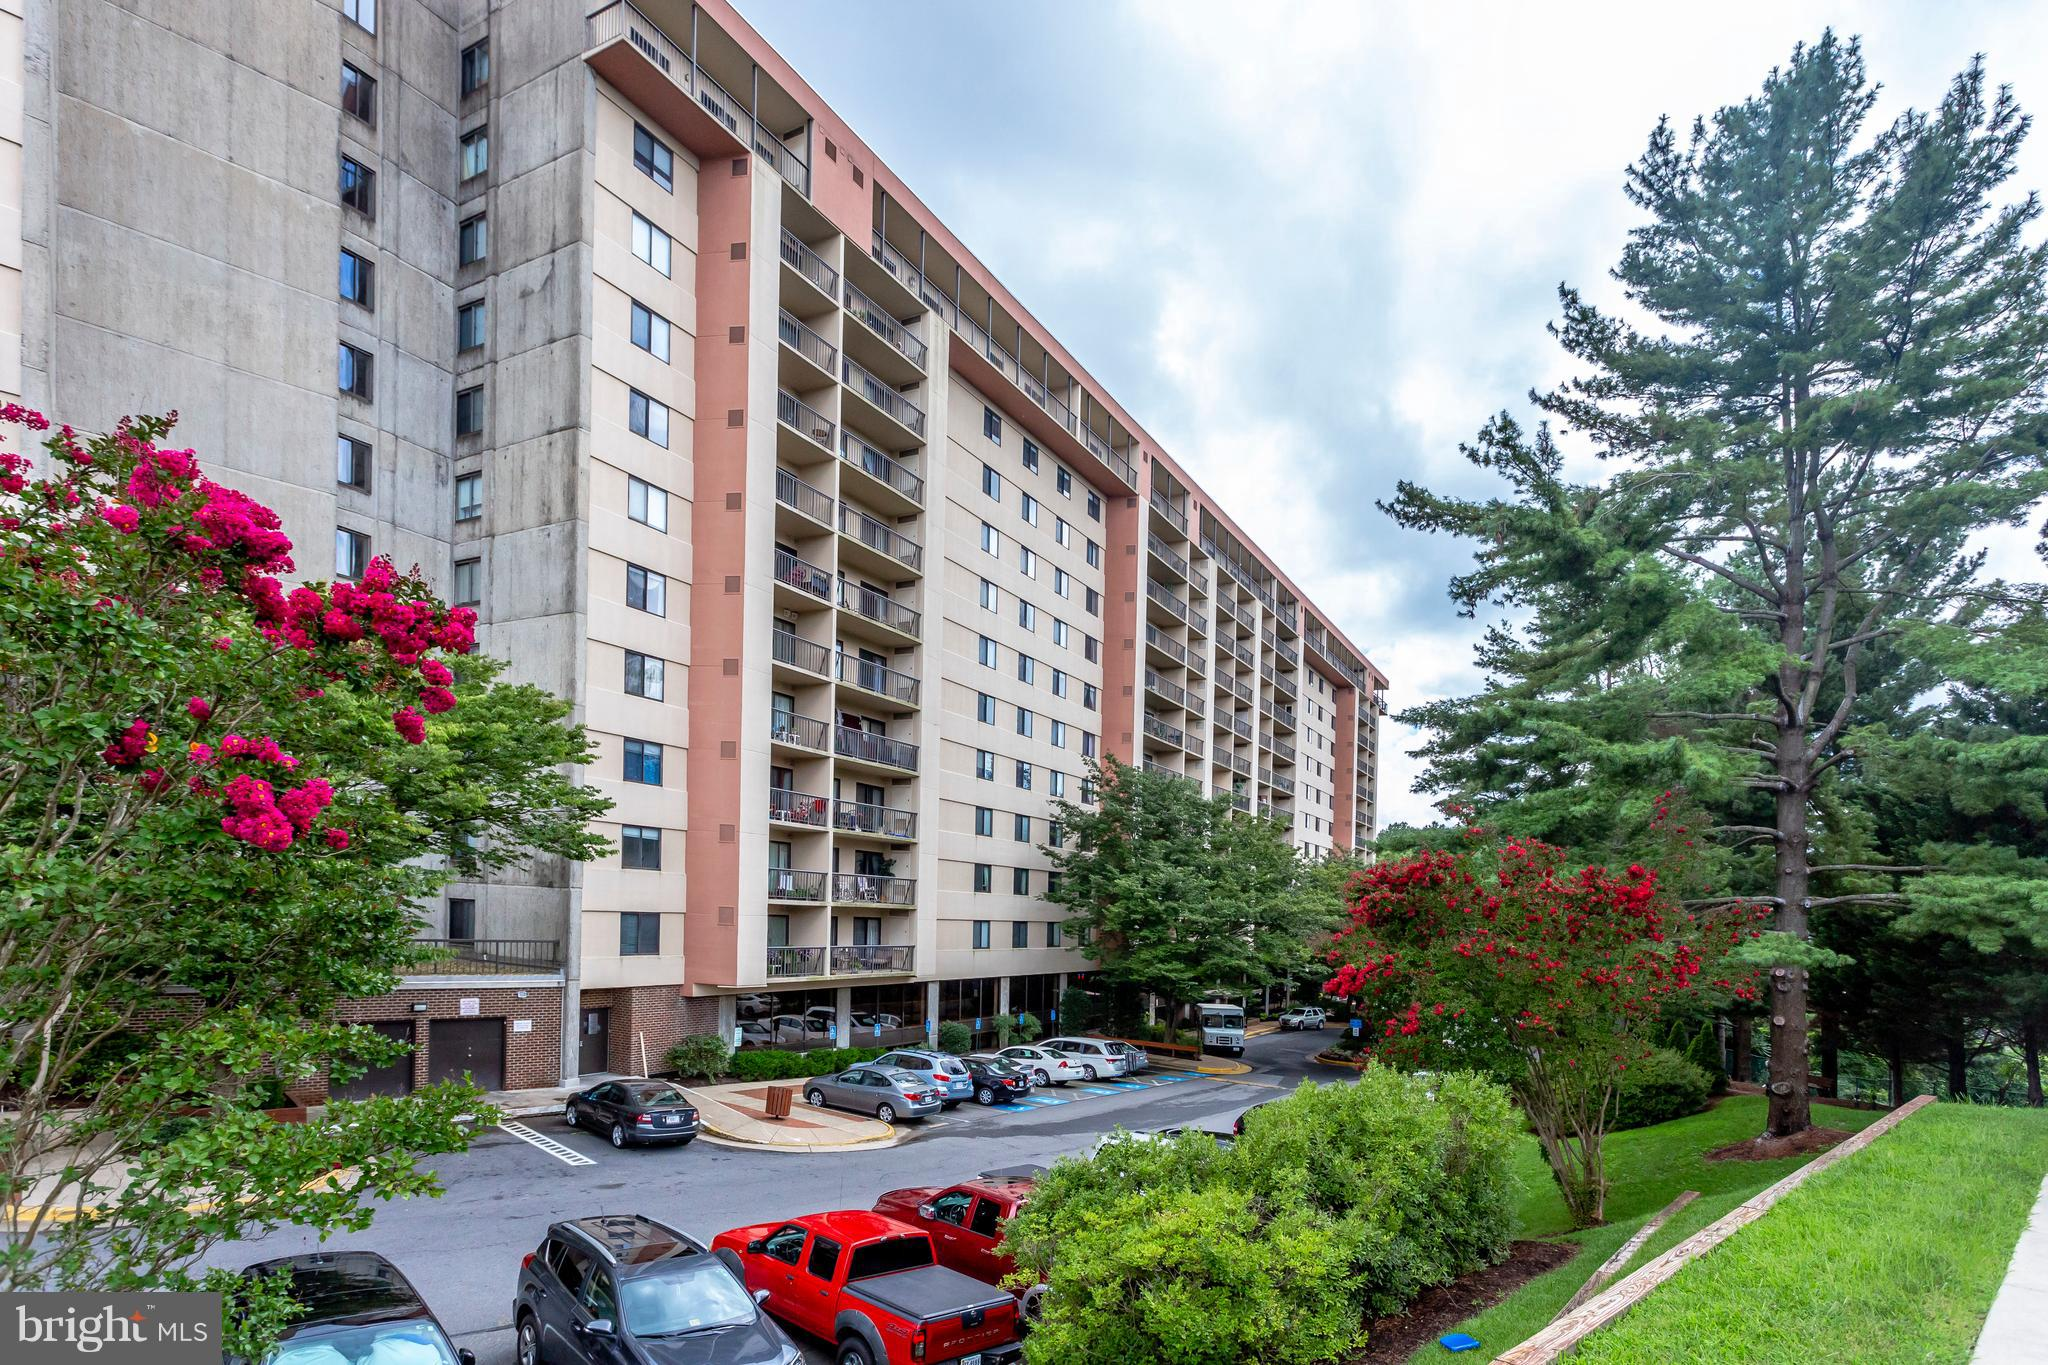 Beautiful and bright 3 bedroom, 2 and a half bath condo in Lakeside Plaza. Big open living spaces, perfect for entertaining. Updated kitchen features granite countertops, stainless steel appliances and 2 large pantries. Balcony overlooks the gorgeous 1 out of 2 pools (second pool is an indoor pool). Unit includes W/D, 1 reserved covered parking space (#306) and a storage unit (#224). Lakeside Plaza is filled with lots of amenities: indoor and outdoor pool, tennis court, hot tub, sauna, weight room, 2 gyms and locker rooms with showers, club room, library, playground, a day care, a barbershop and much more! Water, sewer and trash included in condo fee.